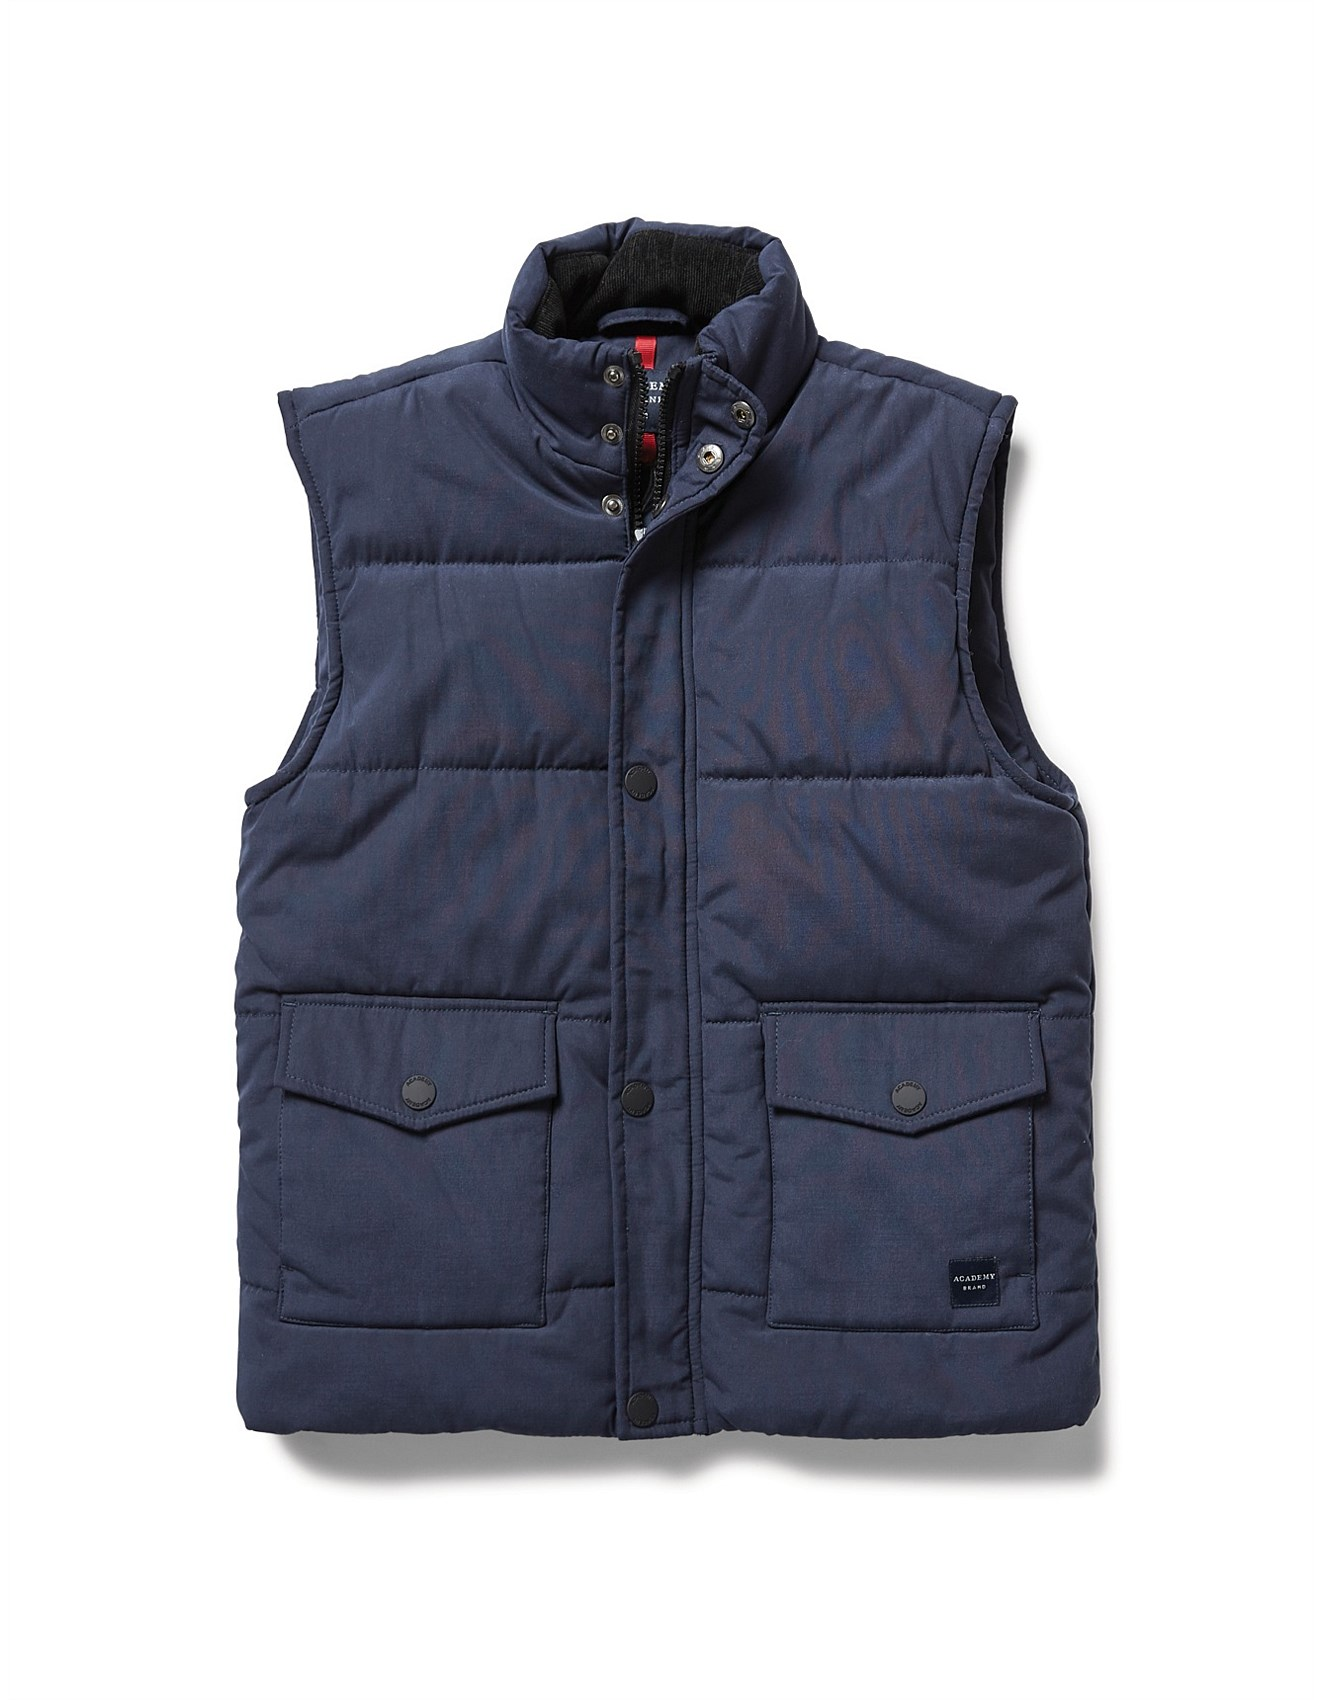 bf2125ef01 Academy Hawk Vest (Boys 8-16 Years)